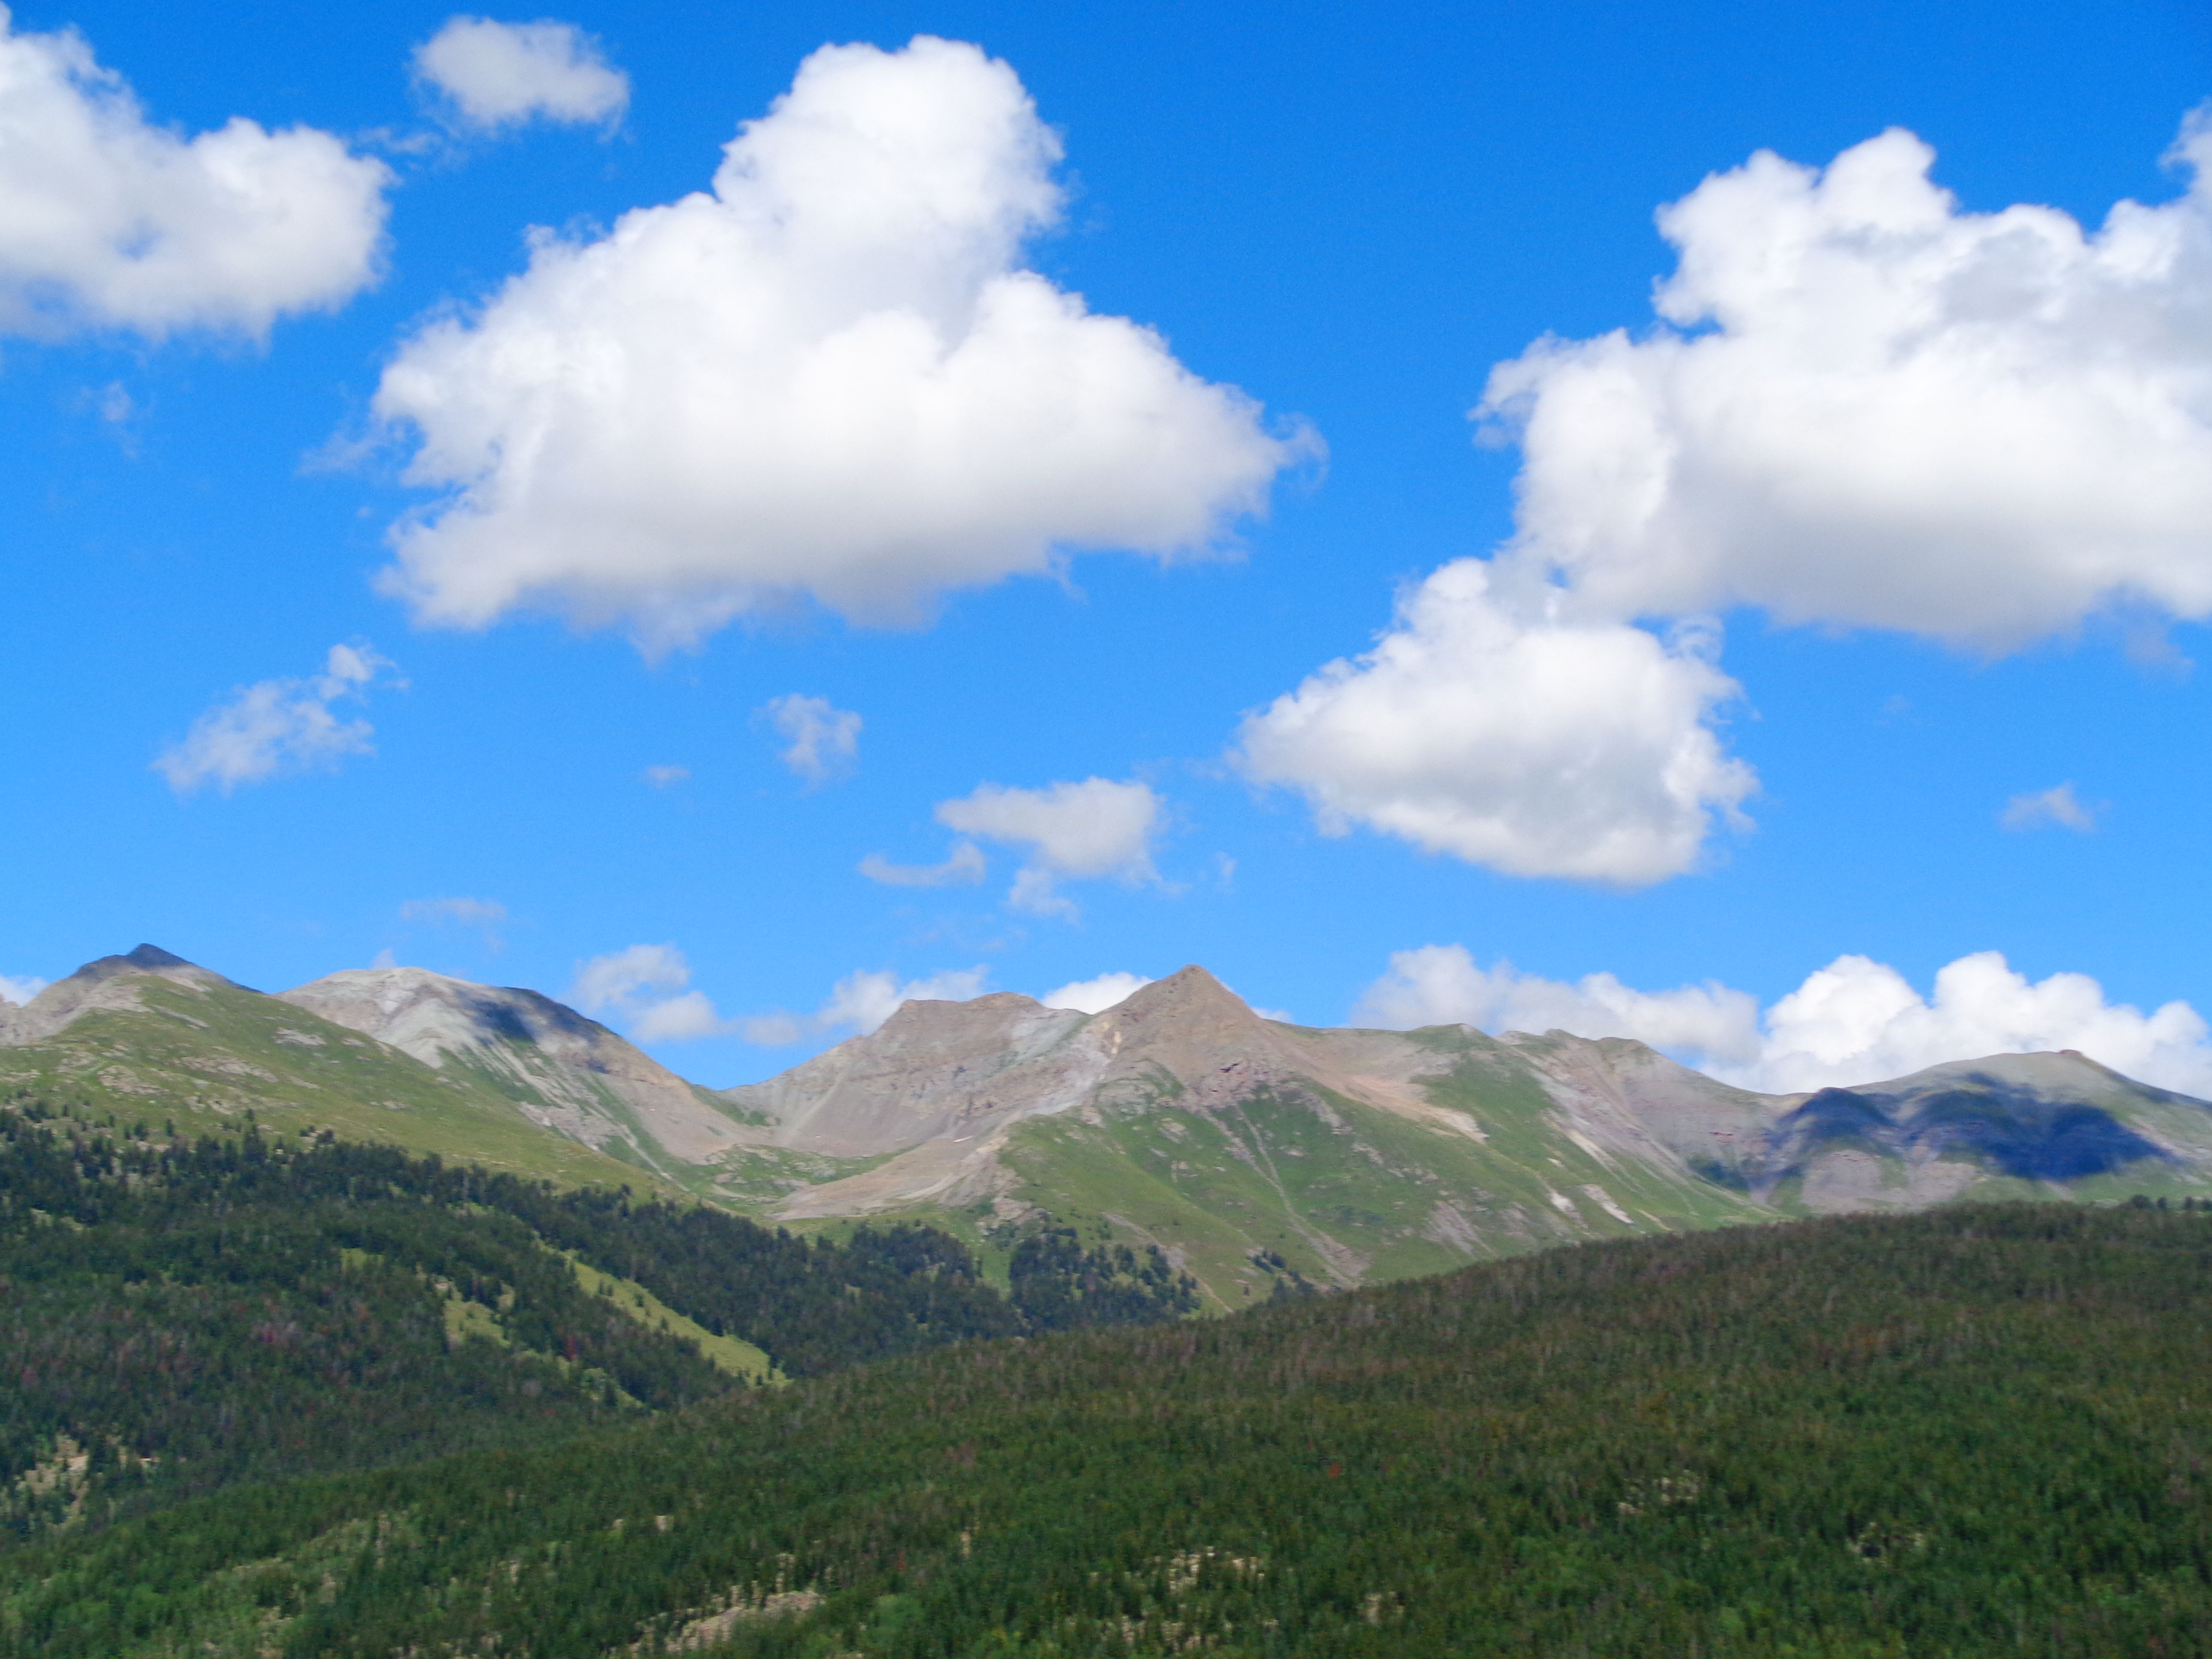 Driving North on 550 from Durango to Silverton.